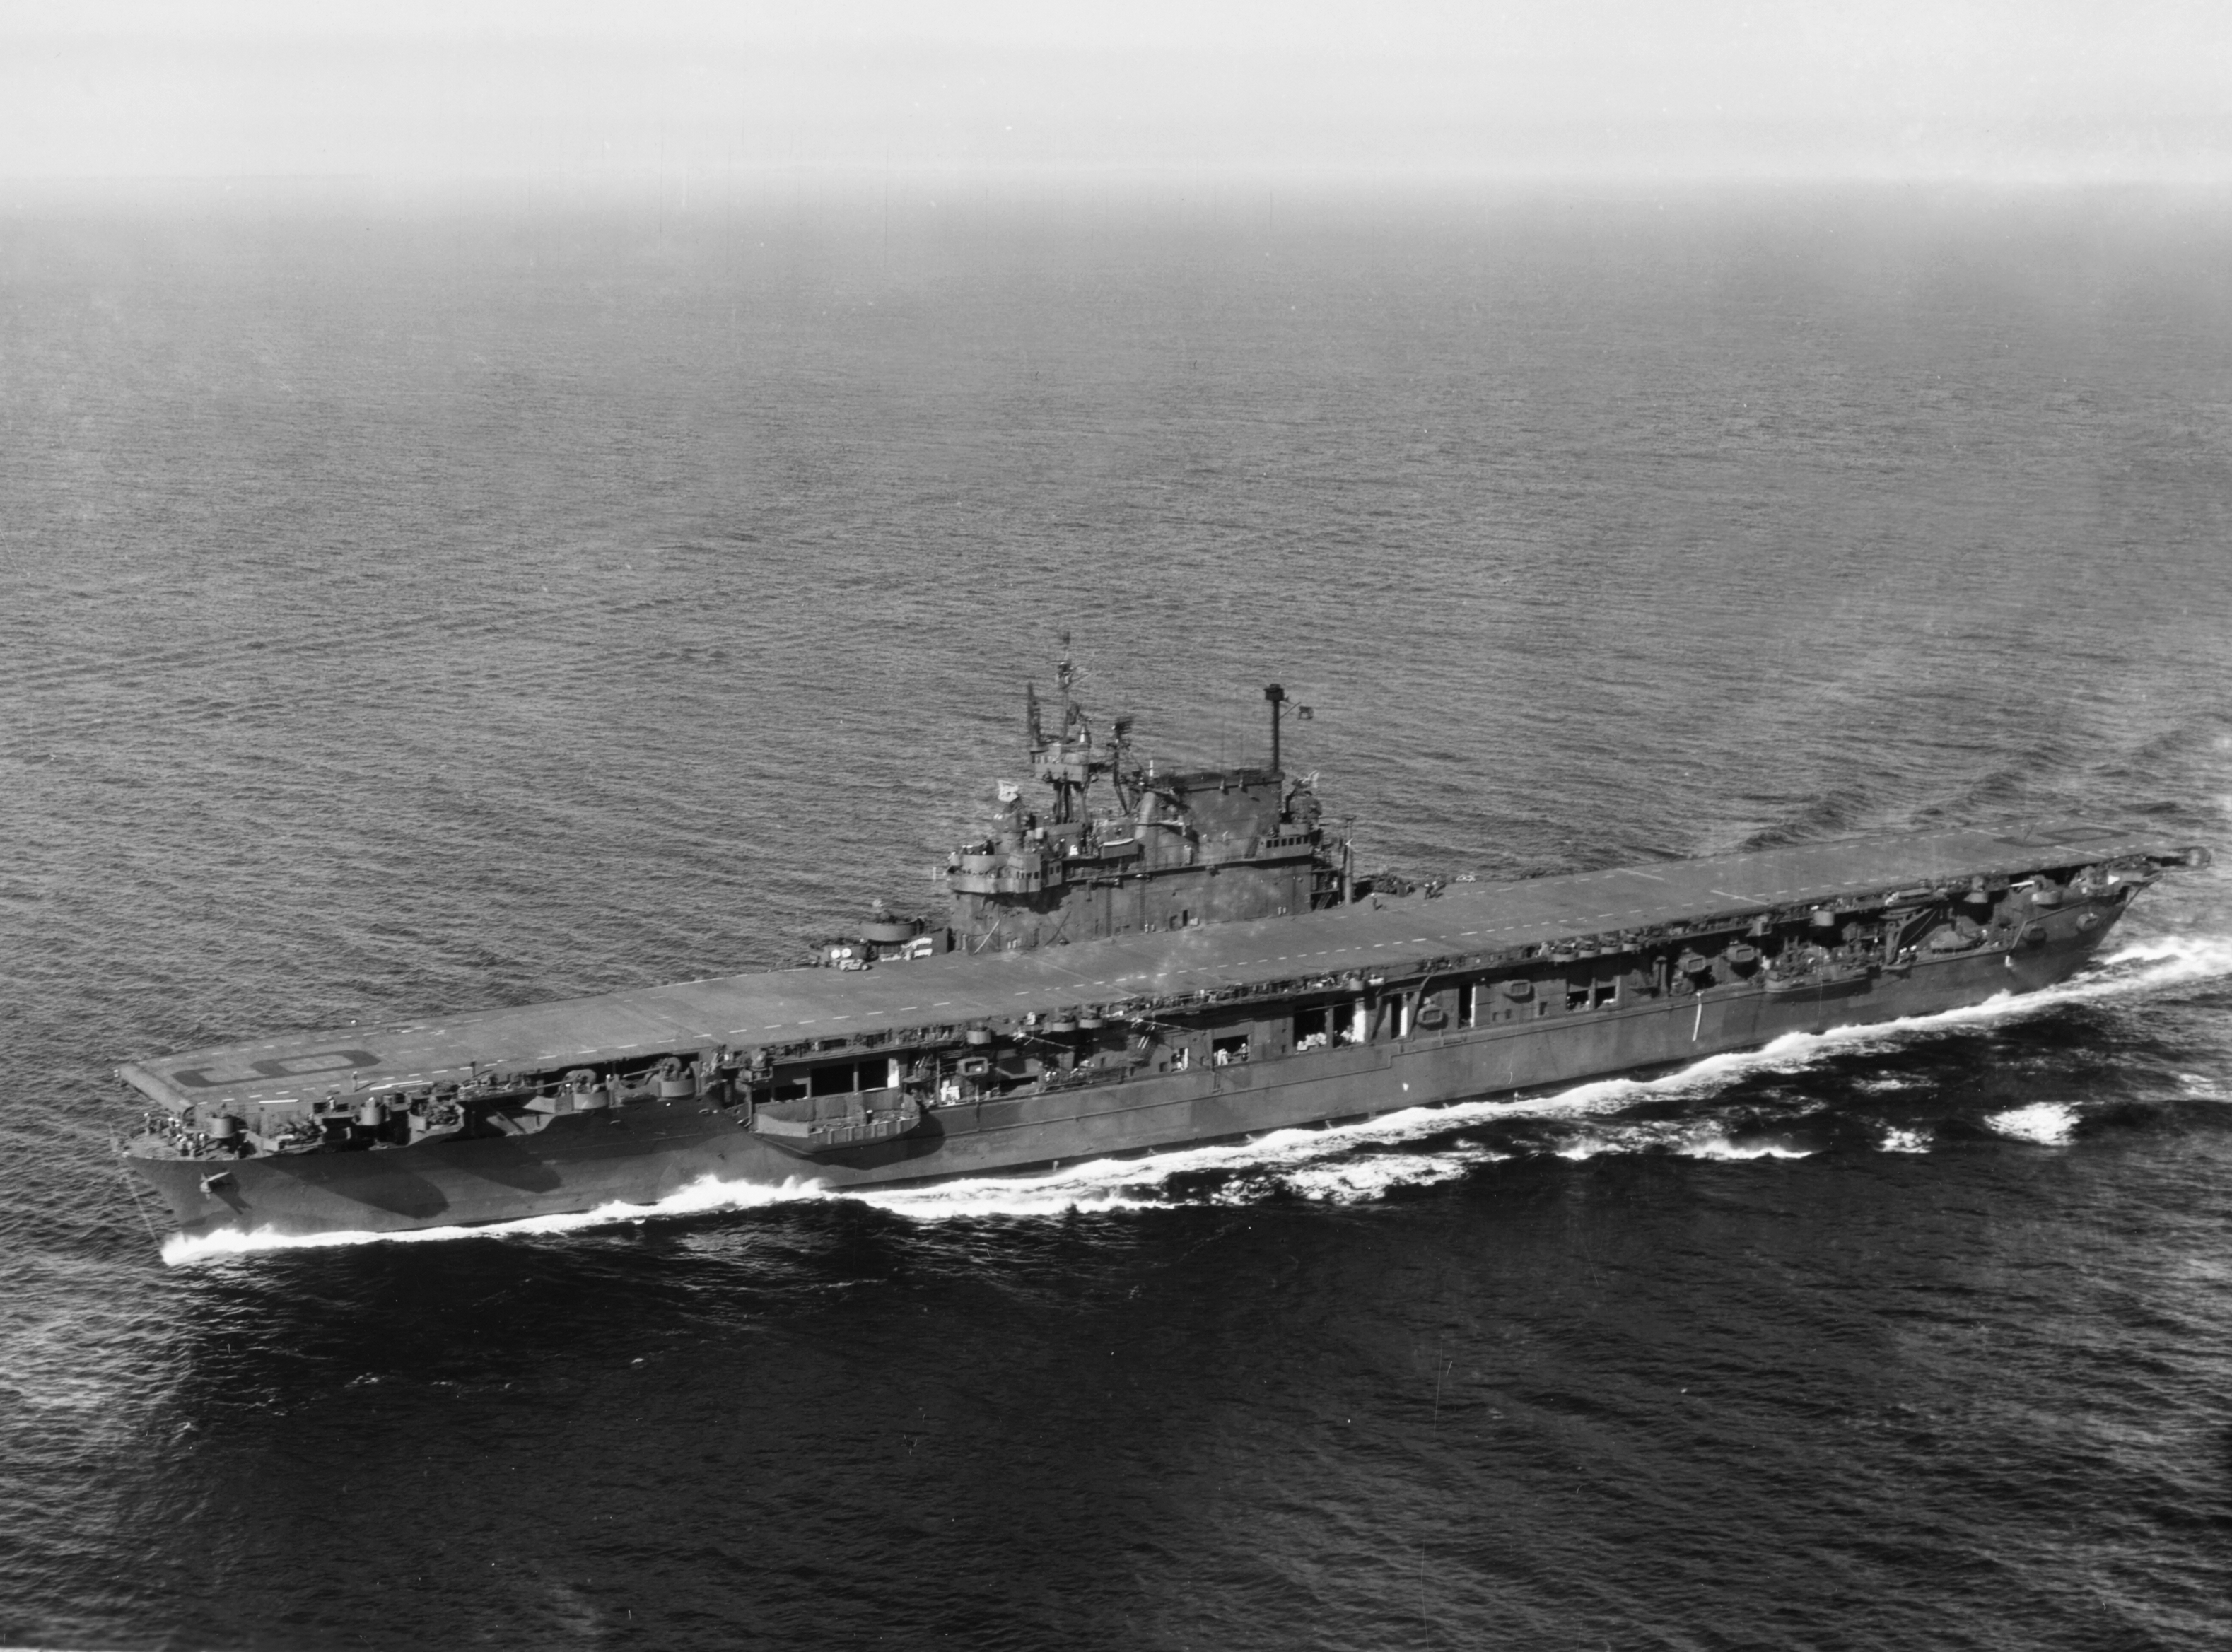 File:USS Enterprise (CV-6) in Puget Sound, September 1945.jpg